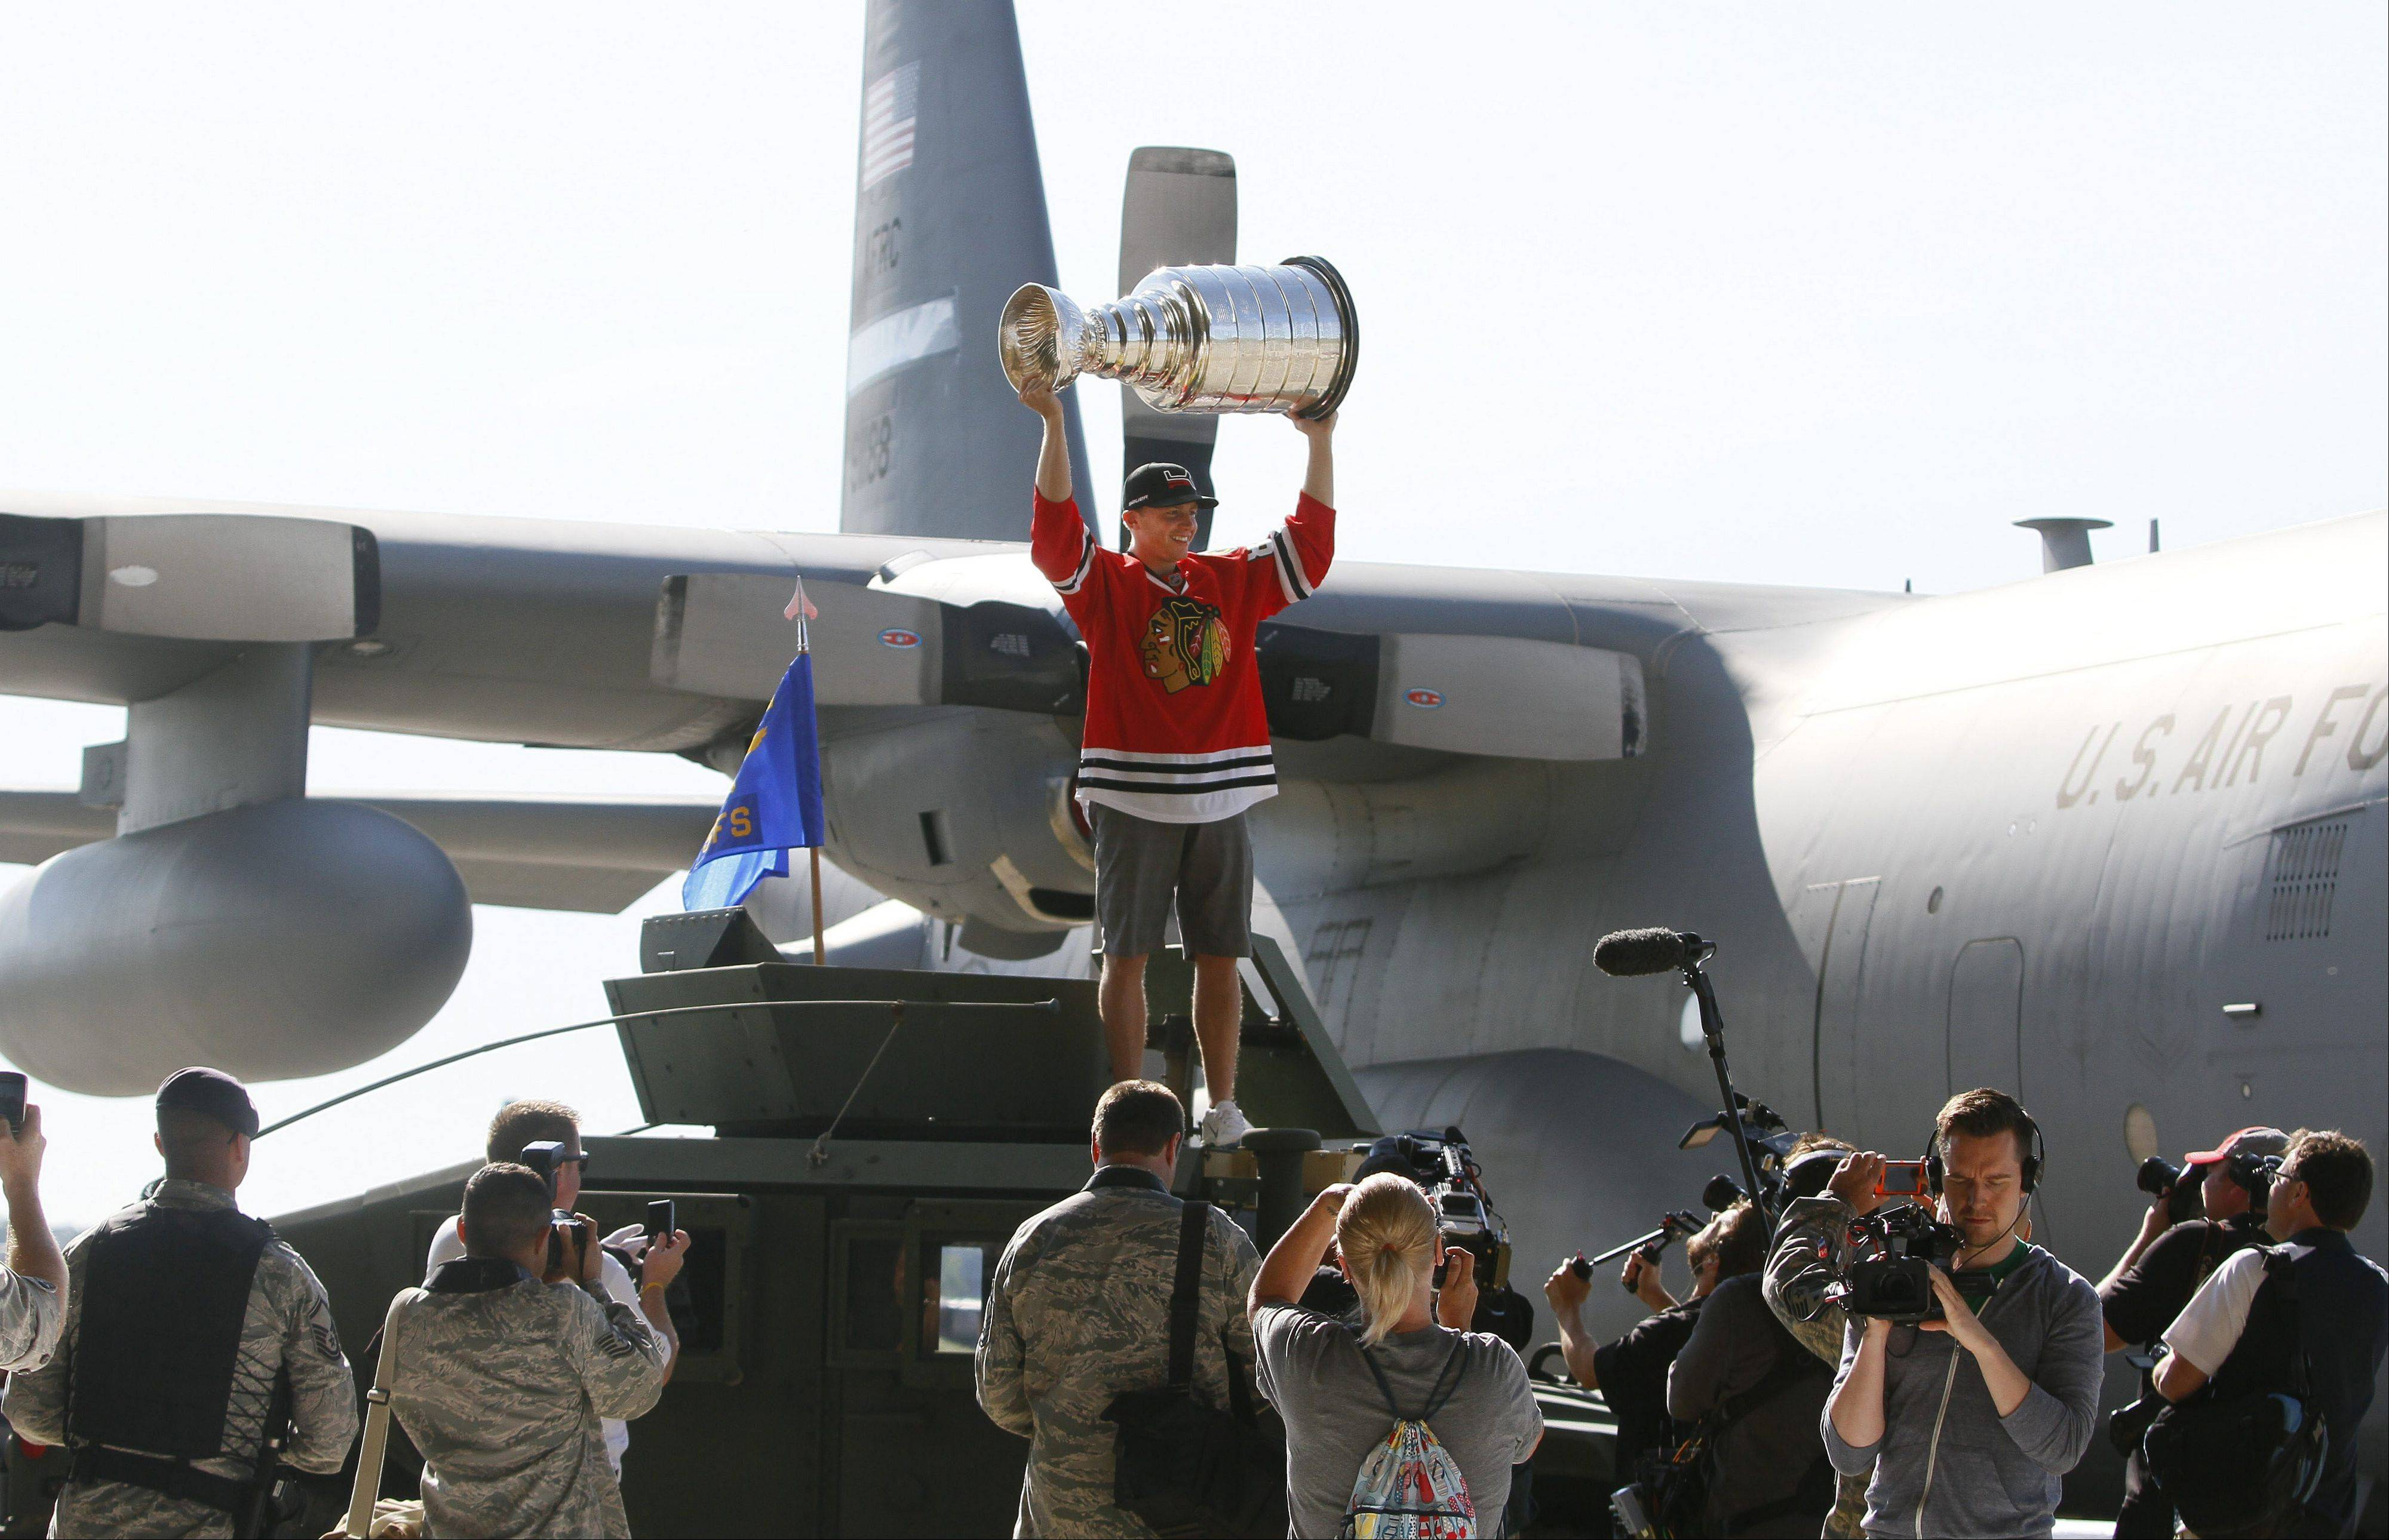 Patrick Kane shows off the Stanley Cup at the Niagara Falls Air Base in the Town of Niagara Saturday, August 24, 2013. (Mark Mulville/Buffalo News)